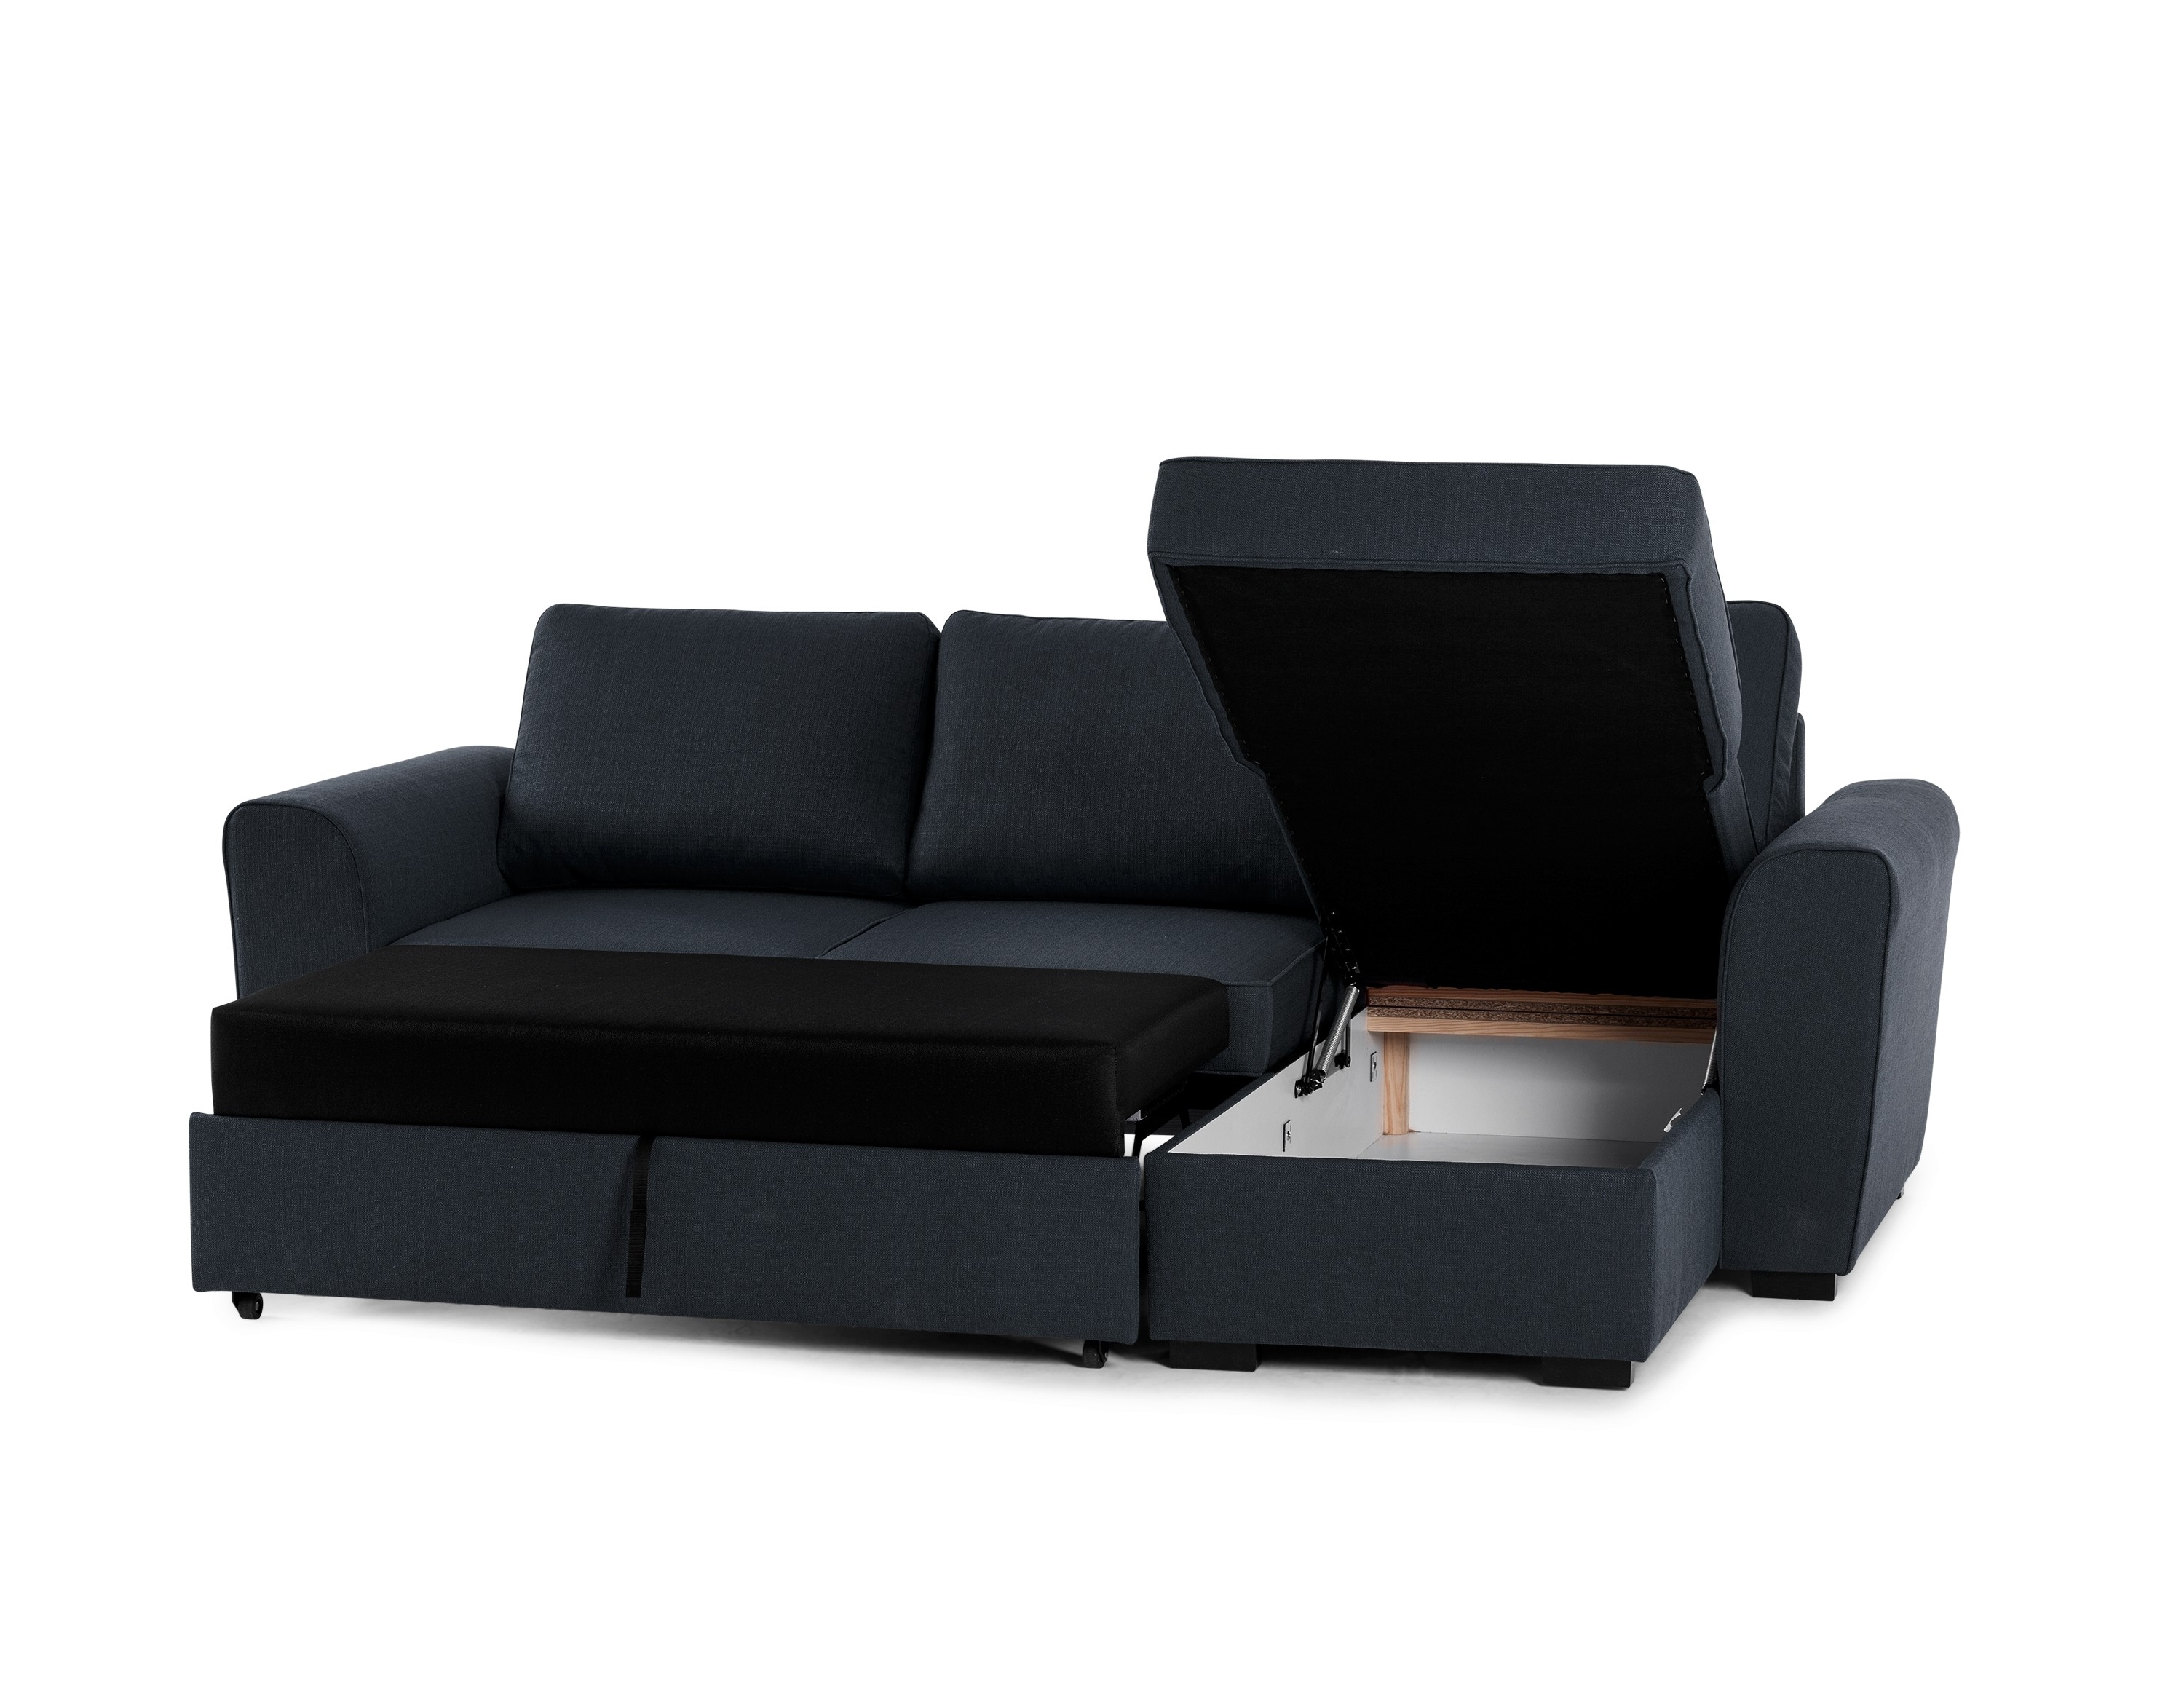 Sectional Sofas At Sears With Regard To 2018 Sears Sofa Bed Sectional • Sofa Bed (View 14 of 15)